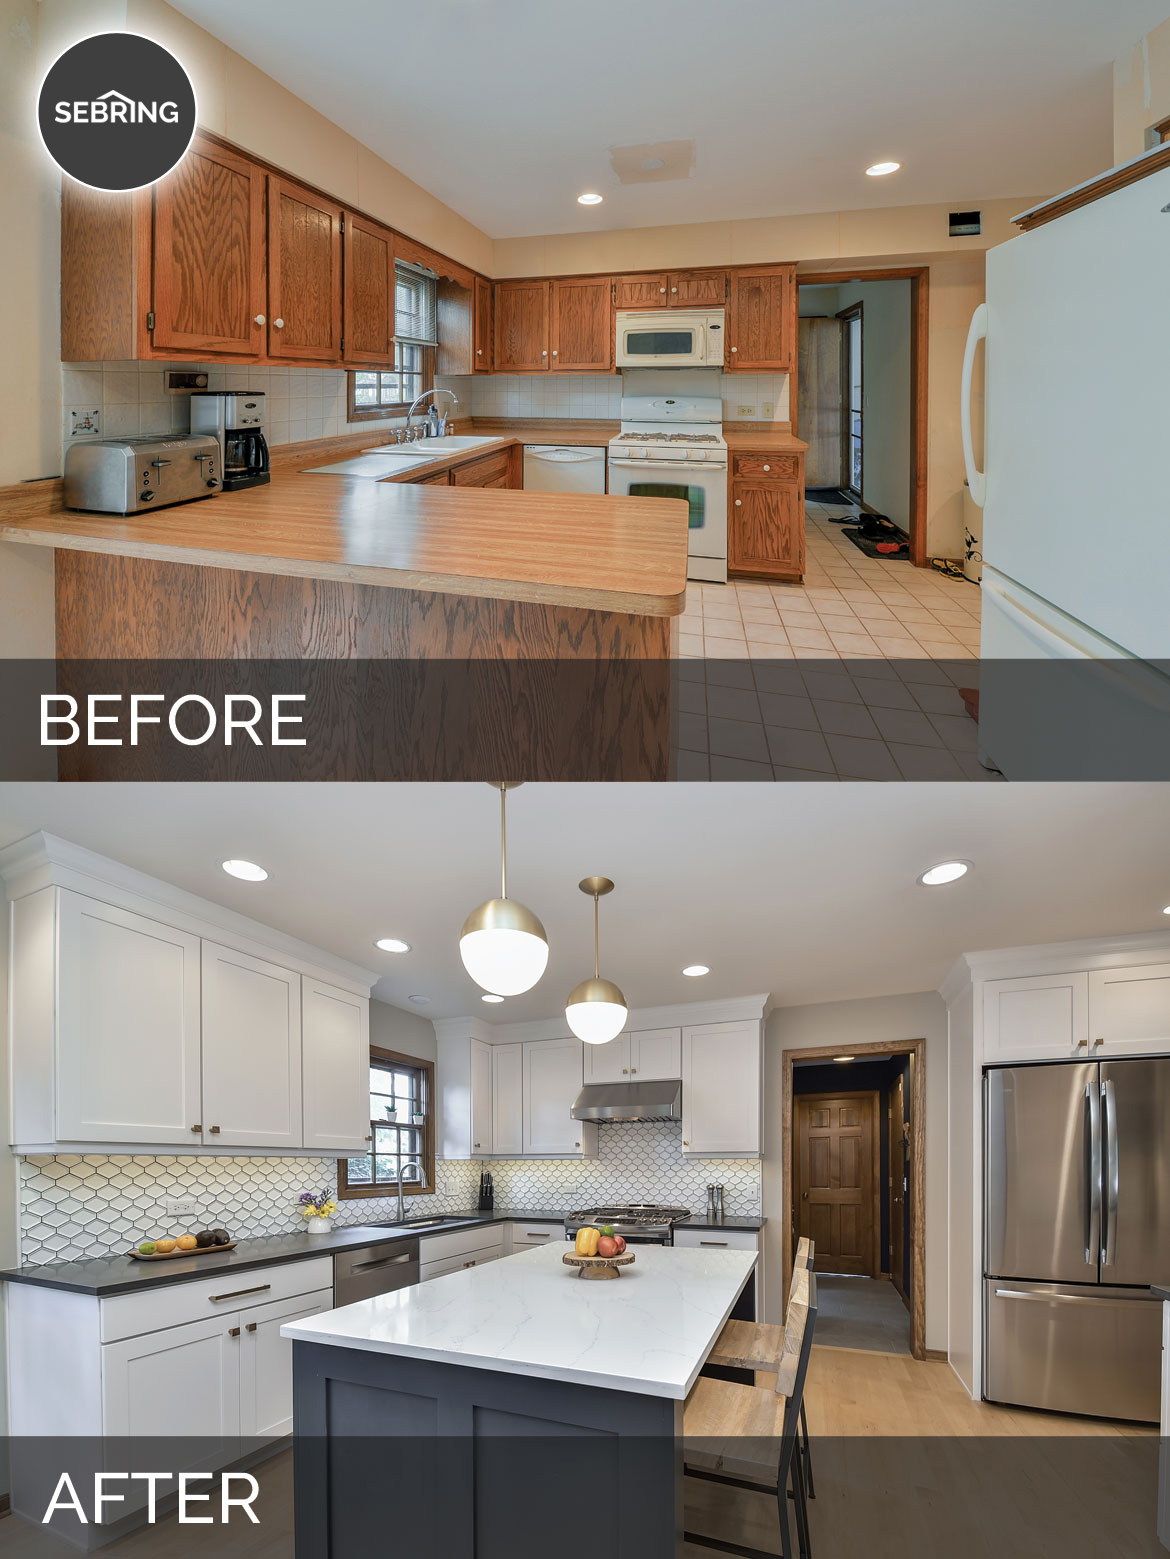 Justin carina s kitchen before after pictures home Before and after interior design projects